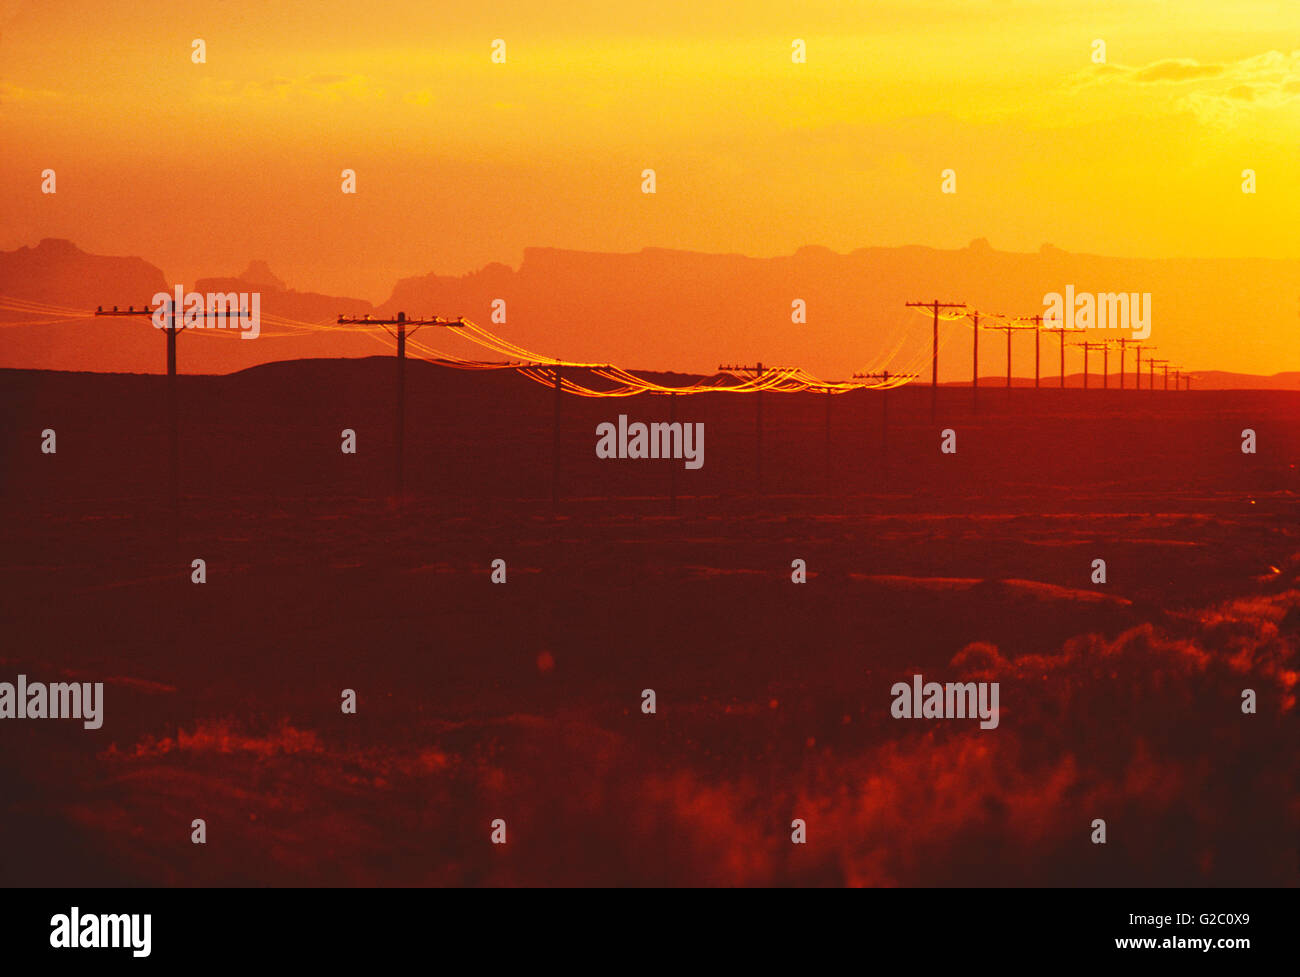 TELEPHONE & ELECTRIC POWER LINES AT SUNSET IN SOUTHERN UTAH; USA - Stock Image